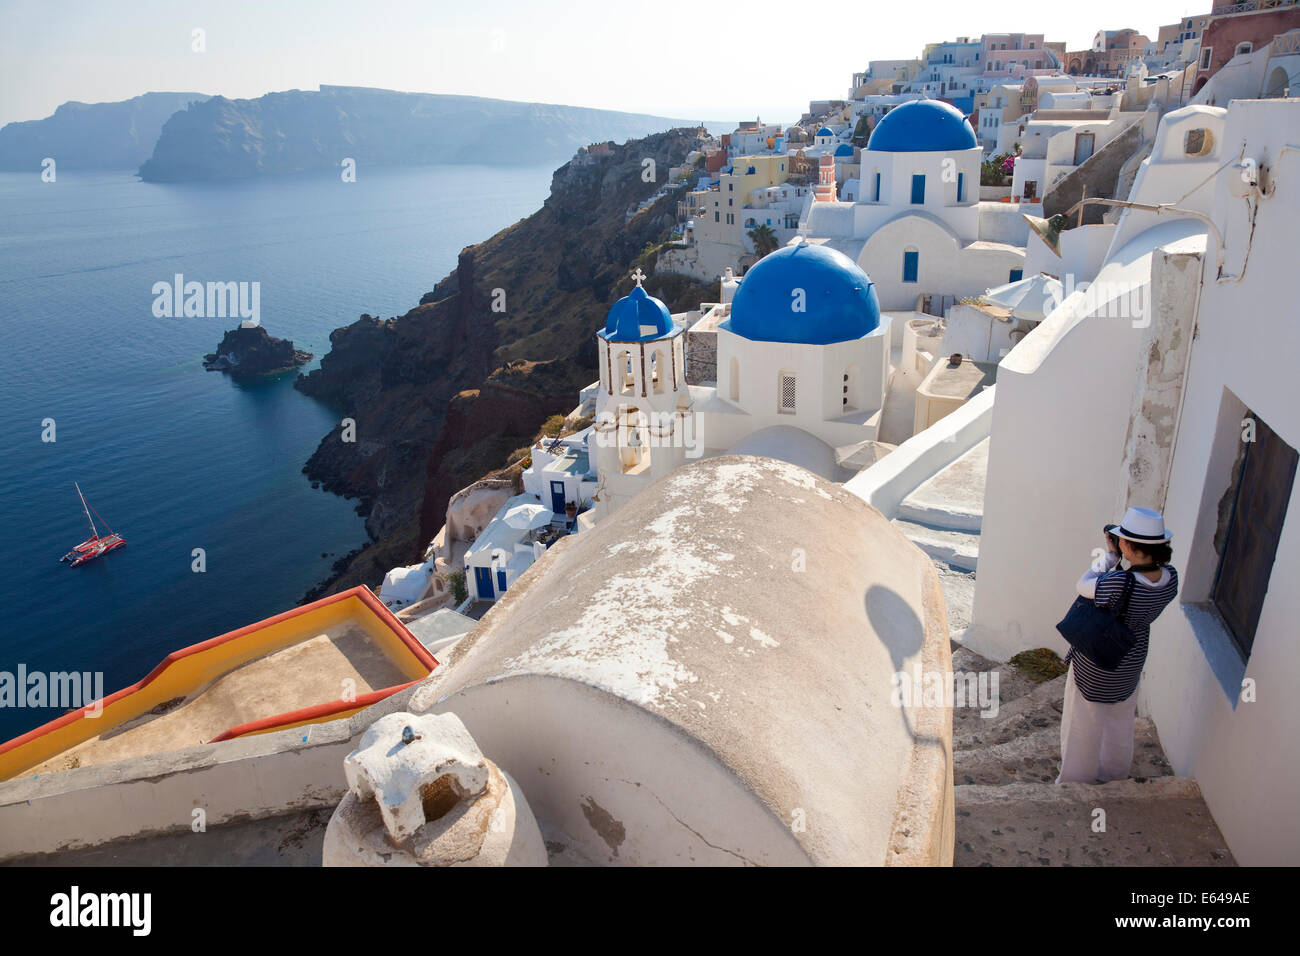 The village of Oia Santorini Cyclades islands, Greece Stock Photo